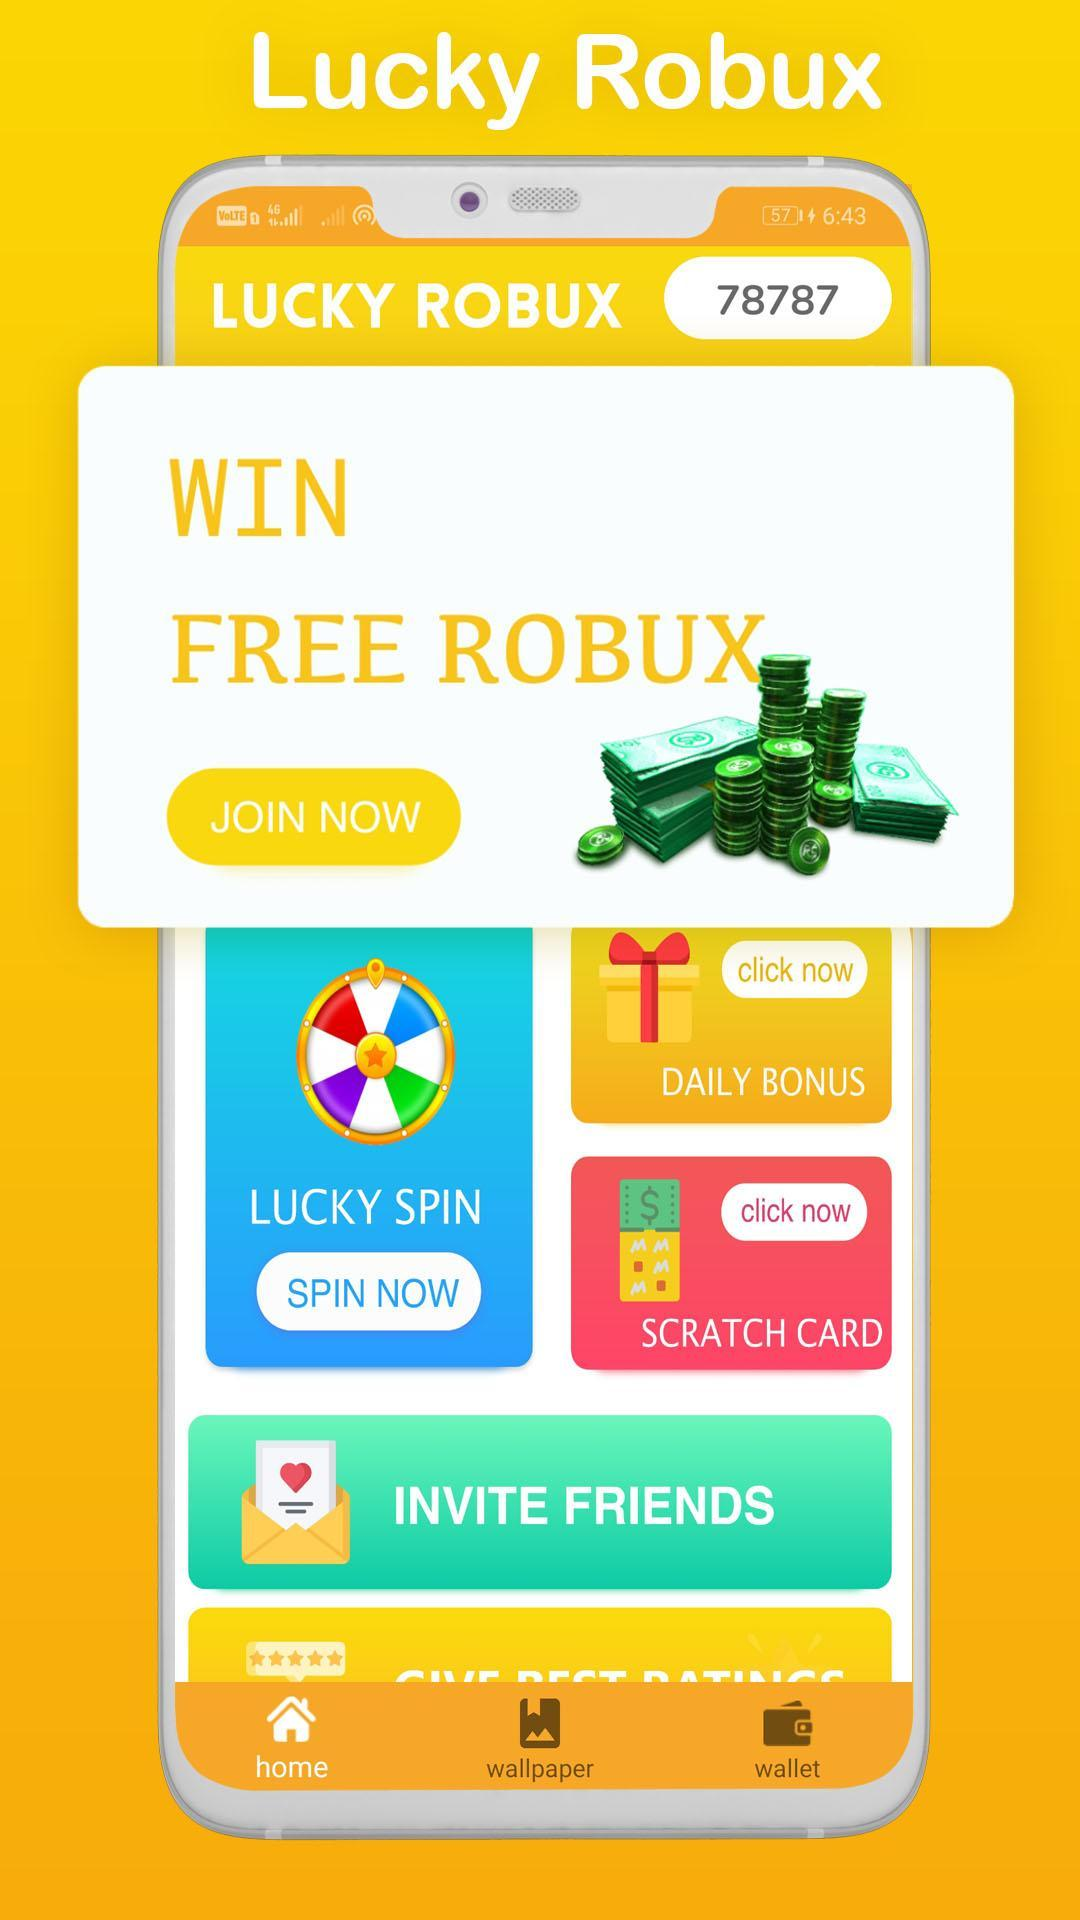 Free Robux Code Generator Prank For Android Apk Download Lucky Robux For Android Apk Download